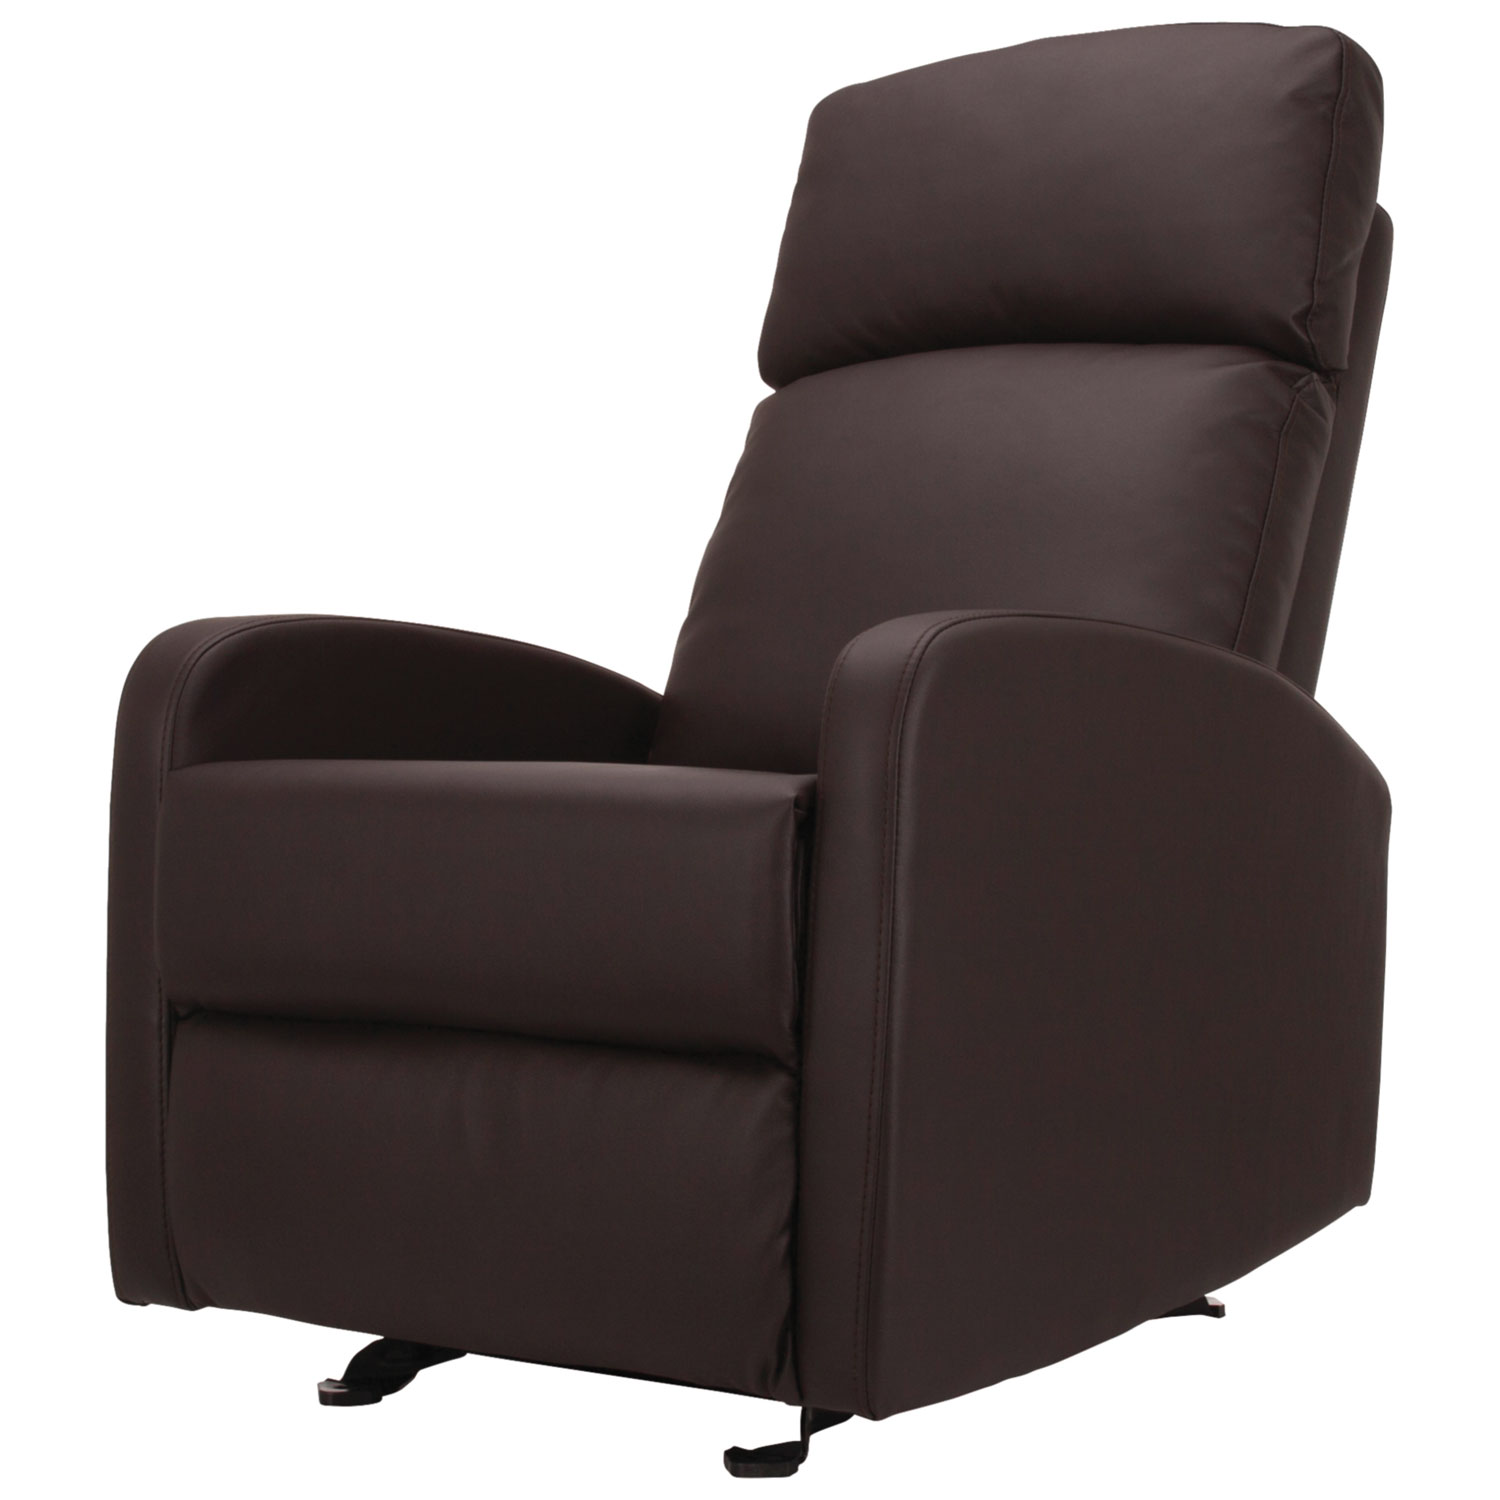 Sears Furniture Kitchener Gliders Shop Glider Chairs Rocking Chairs Best Buy Canada